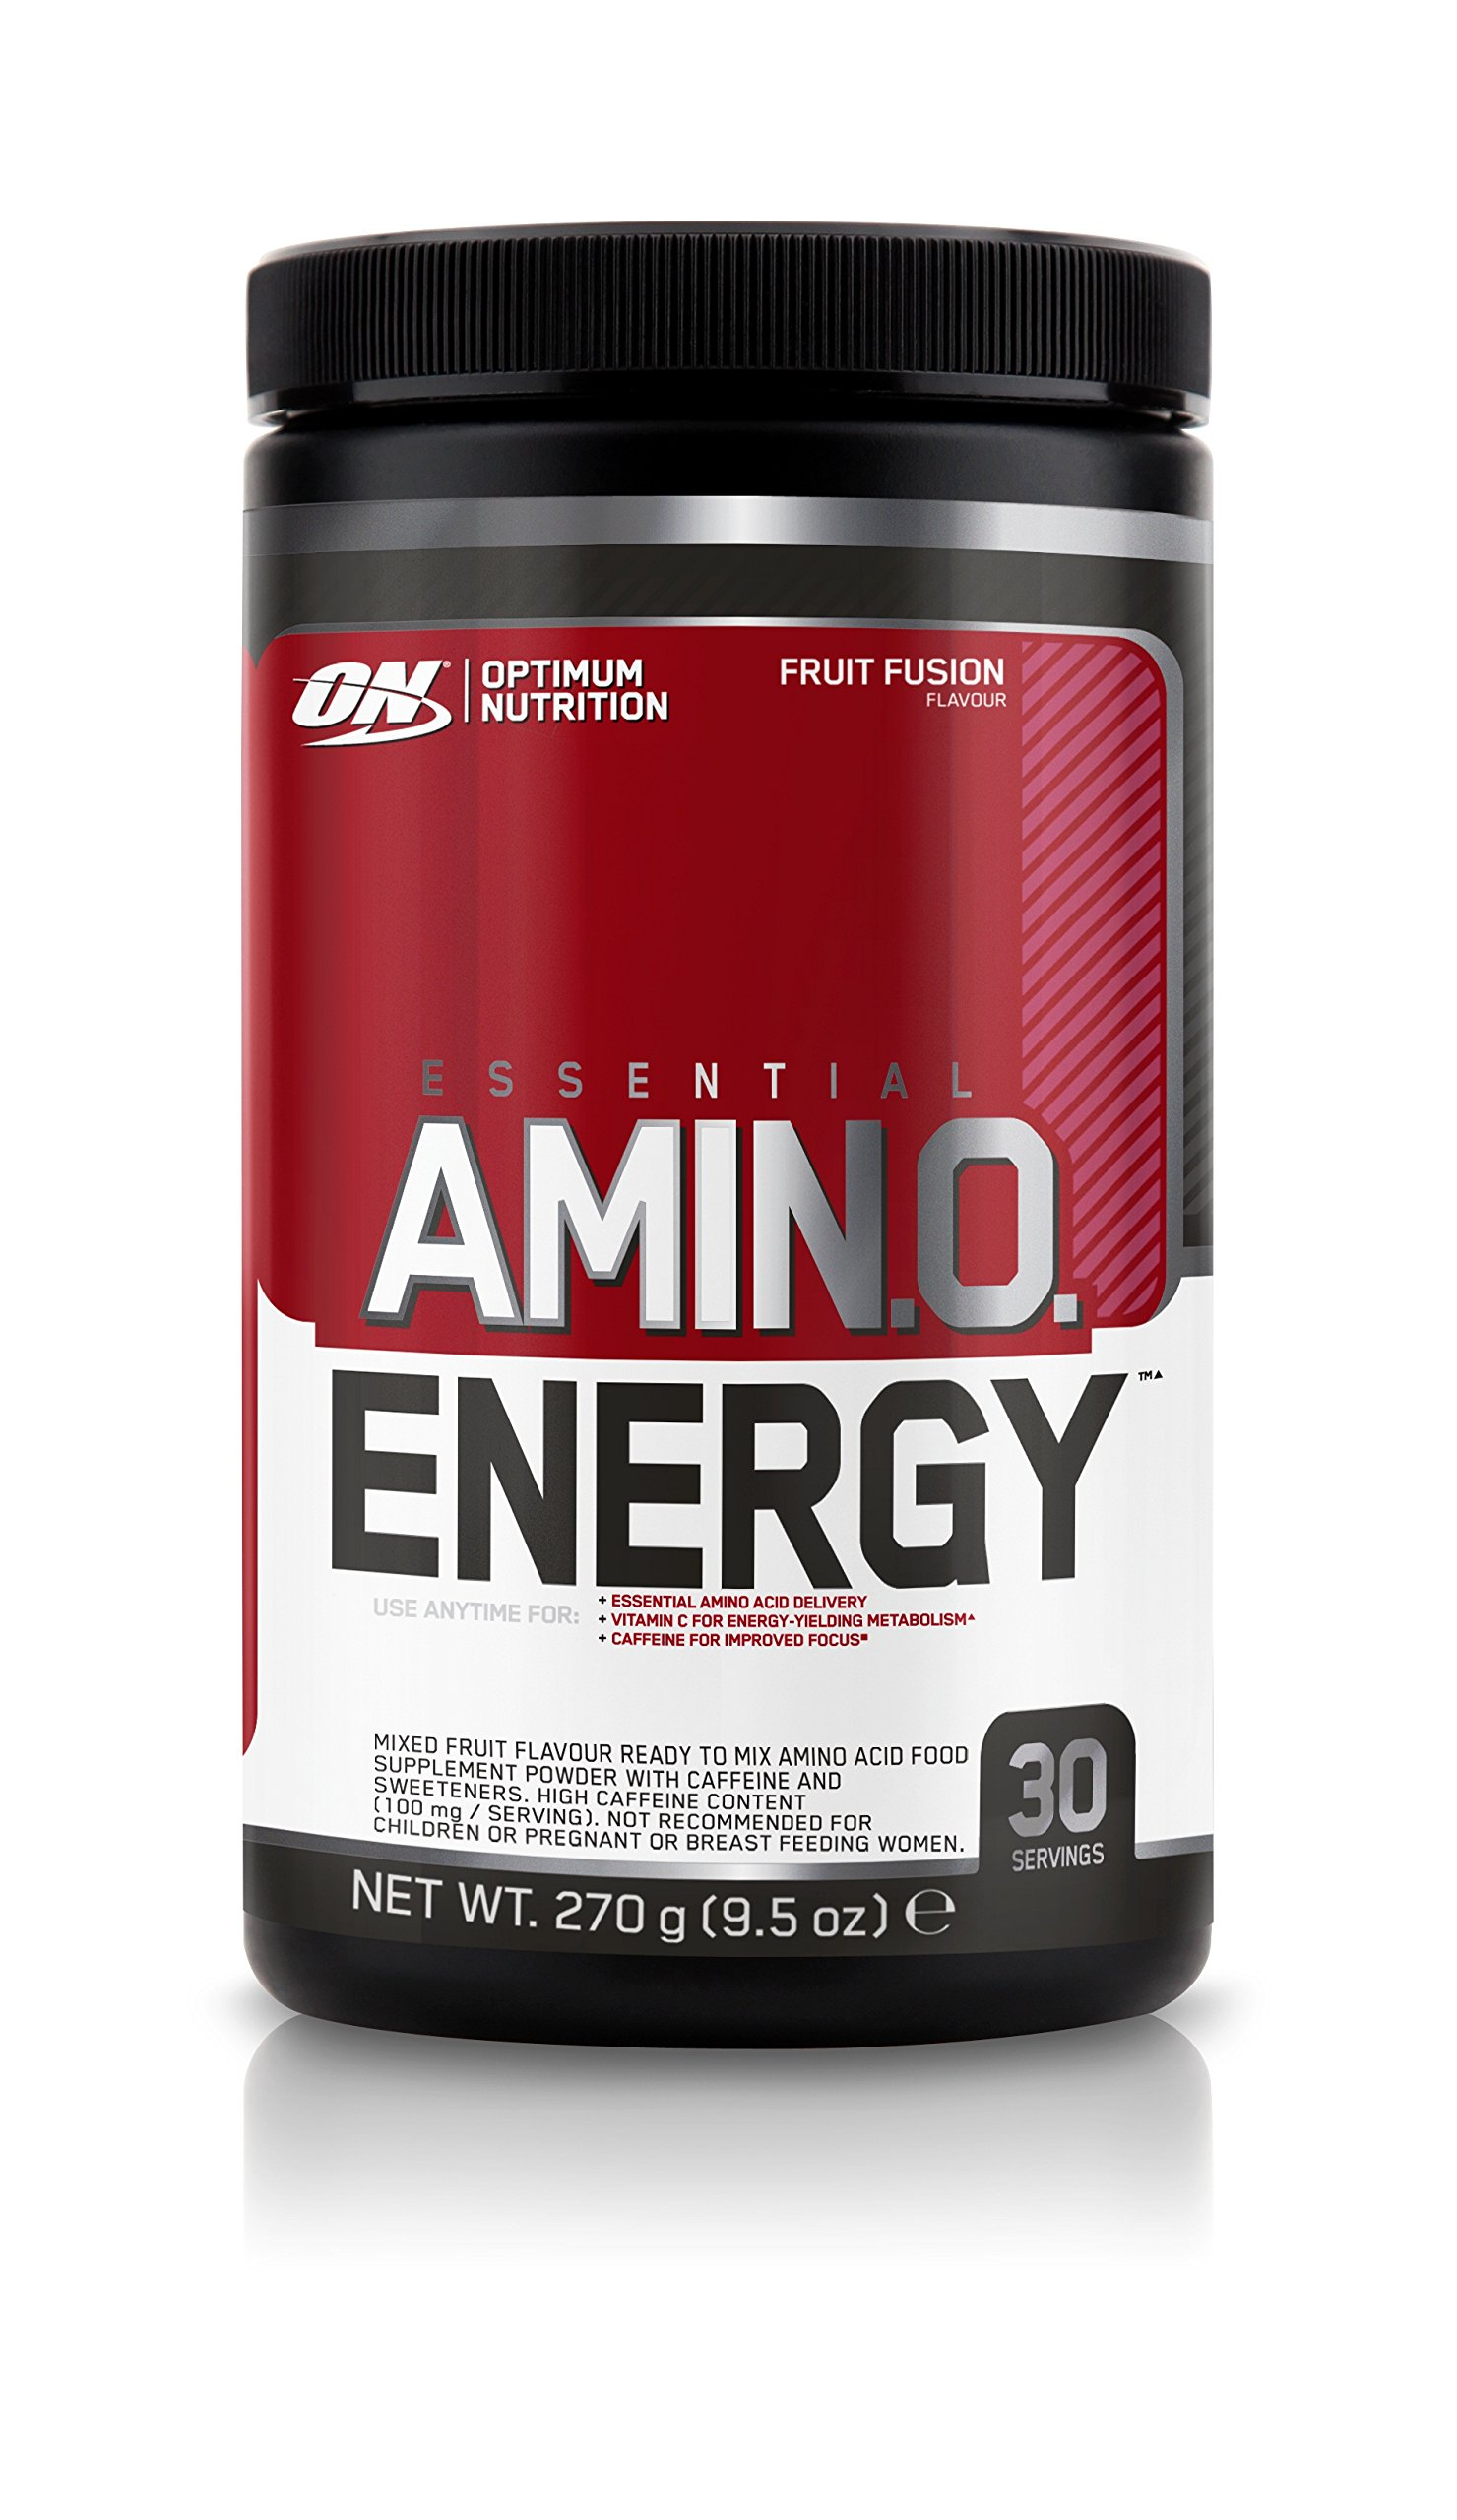 Optimum Nutrition Amino Energy with Green Tea and Green Coffee Extract, Preworkout and Amino Acids, Flavor: Fruit Fusion, 30 Servings